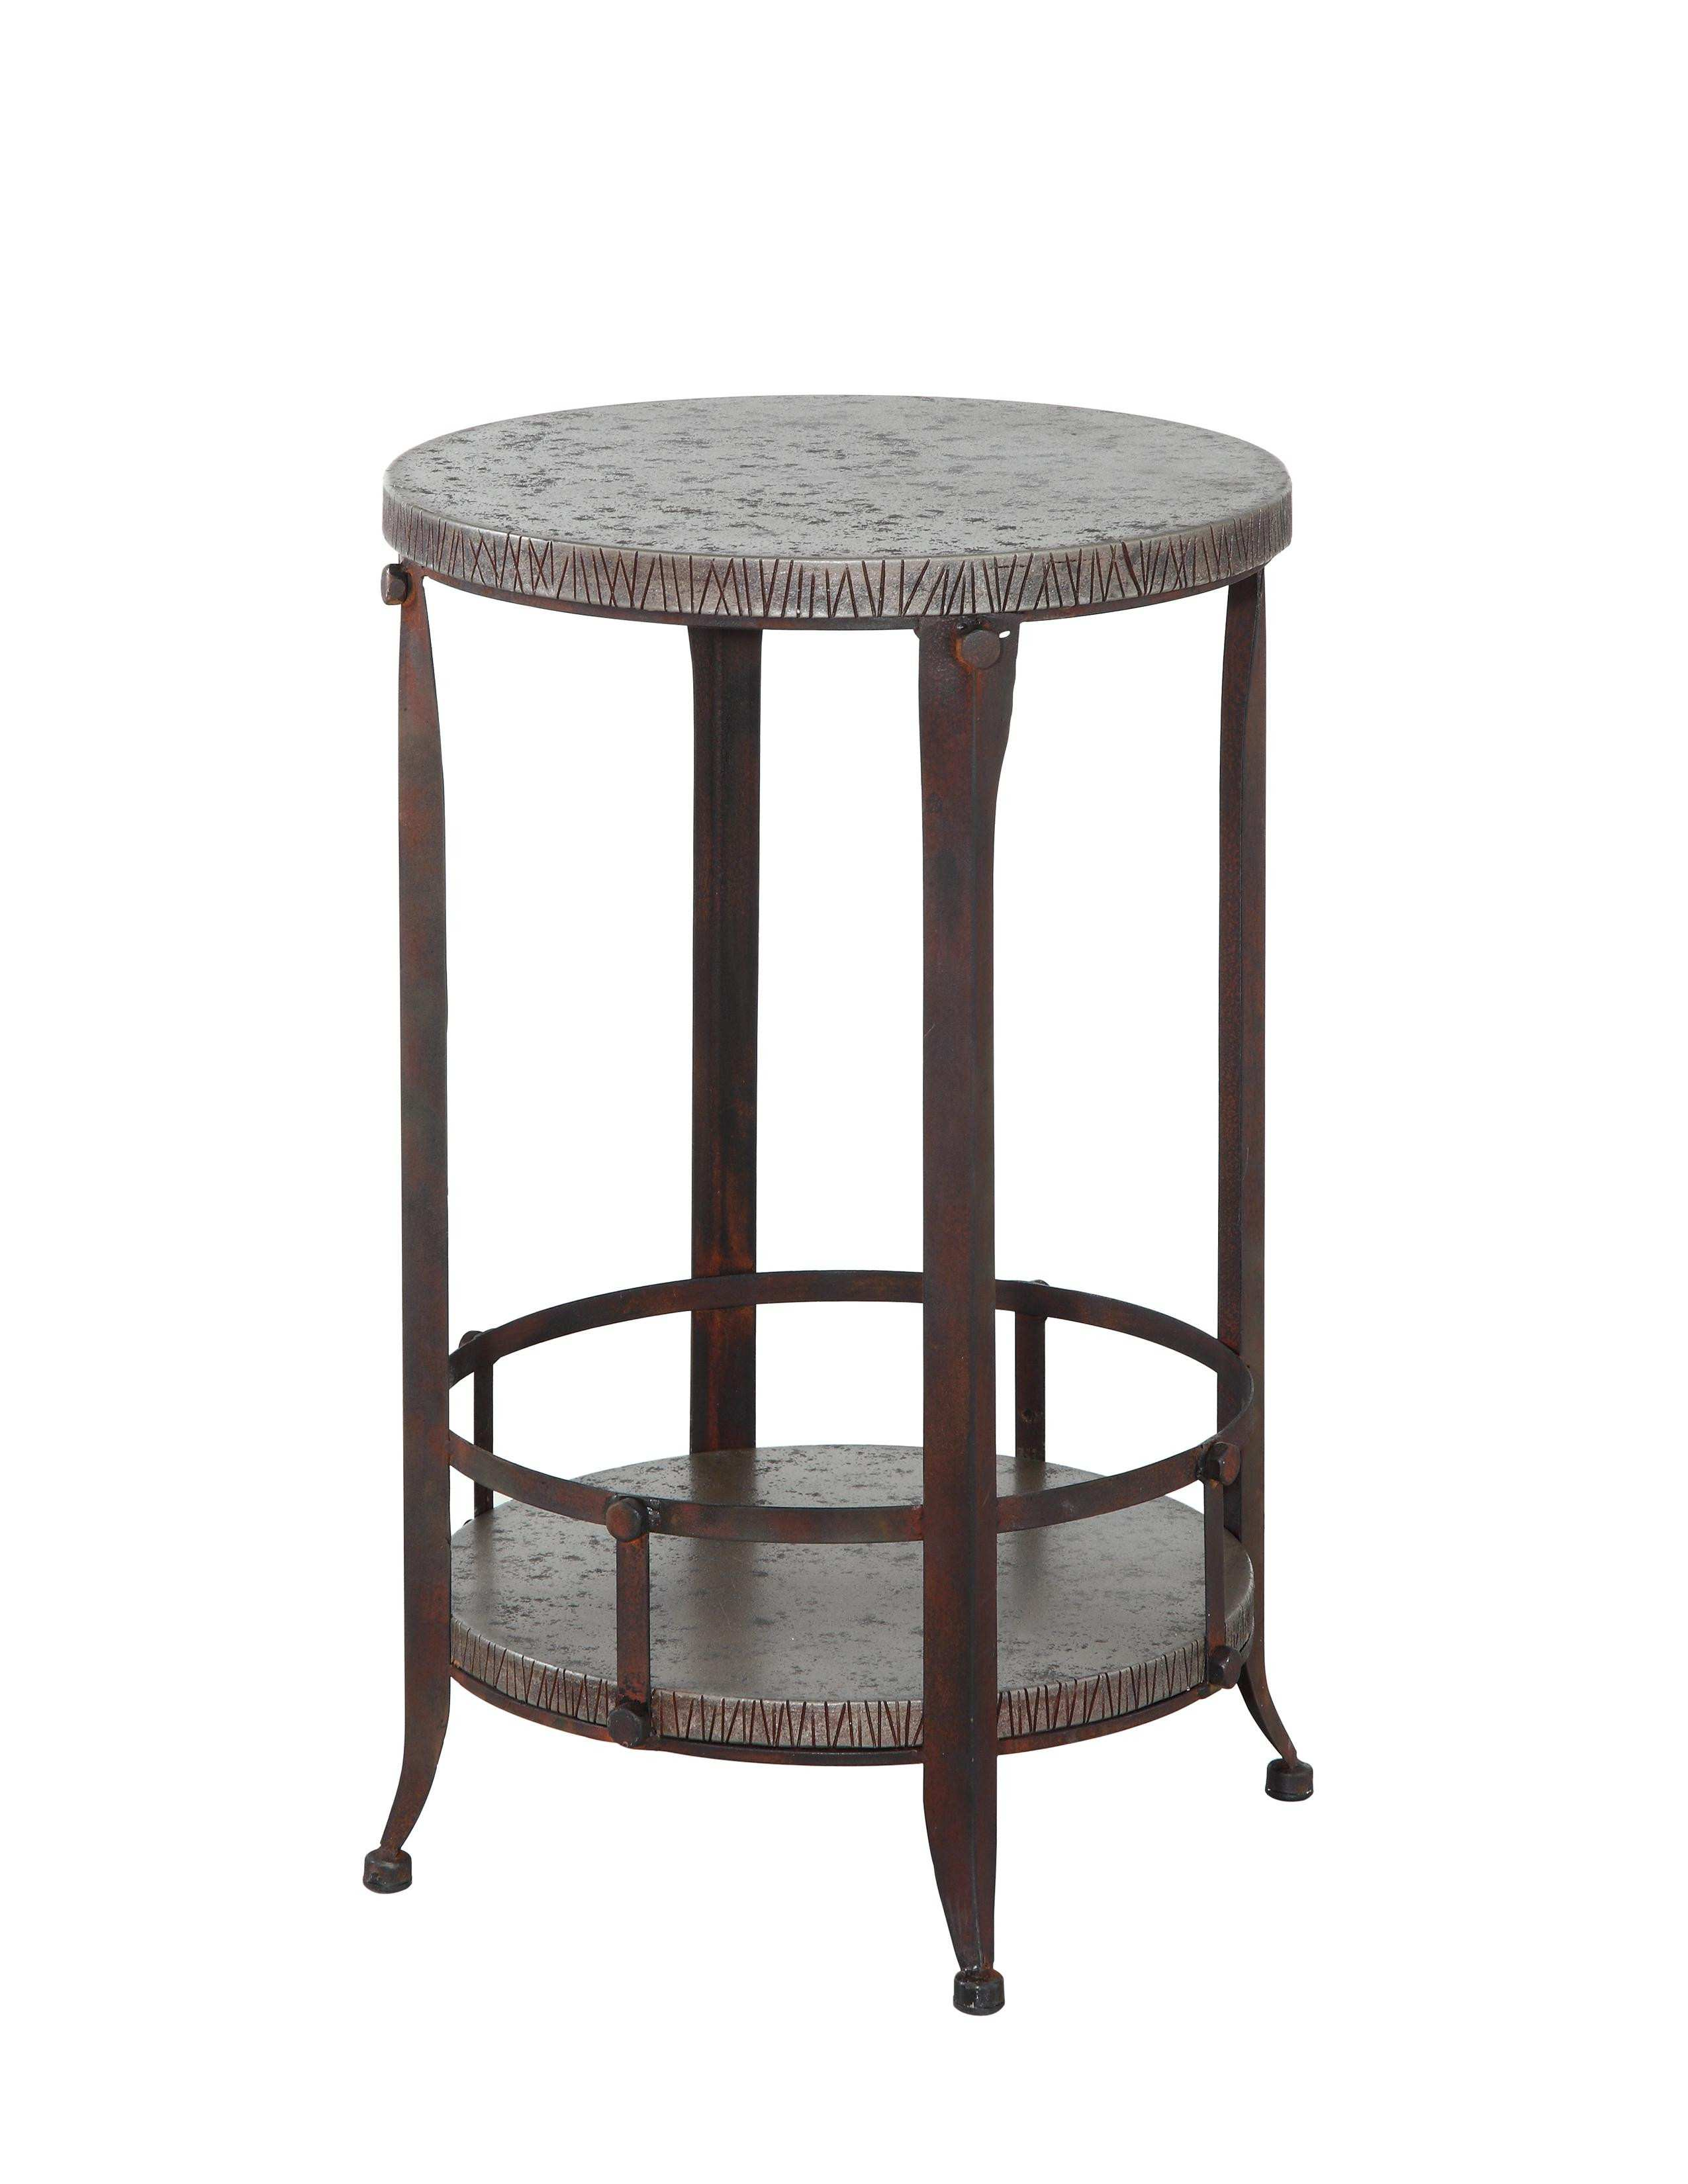 stunning small round side table for gray marble accent using brown painted red home accents modern pedestal black linen tablecloth dining room chairs with arms uttermost laton